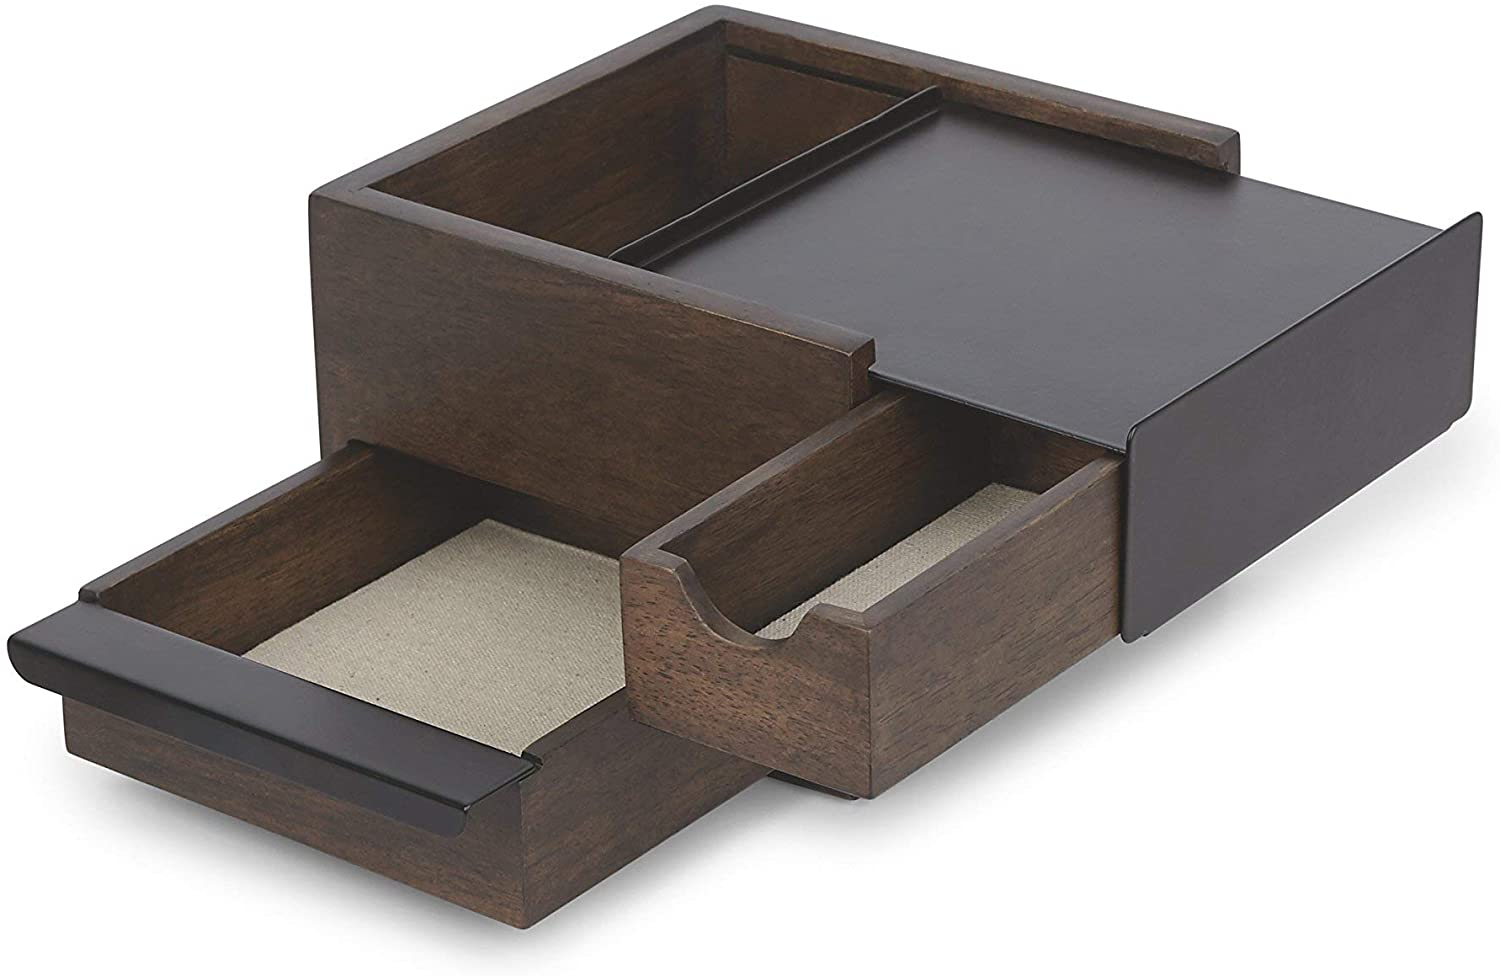 Umbra Mini Stowit Jewelry Box - Modern Keepsake Storage Organizer with Hidden Compartment Drawers for Ring, Bracelet, Watch, Necklace, Earrings, and Accessories (Black / Walnut)